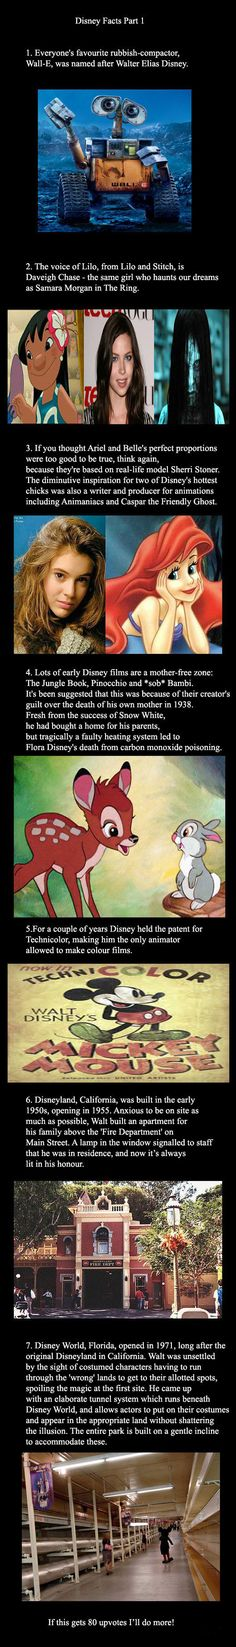 A few interesting Disney facts  // funny pictures - funny photos - funny images - funny pics - funny quotes - #lol #humor #funnypictures